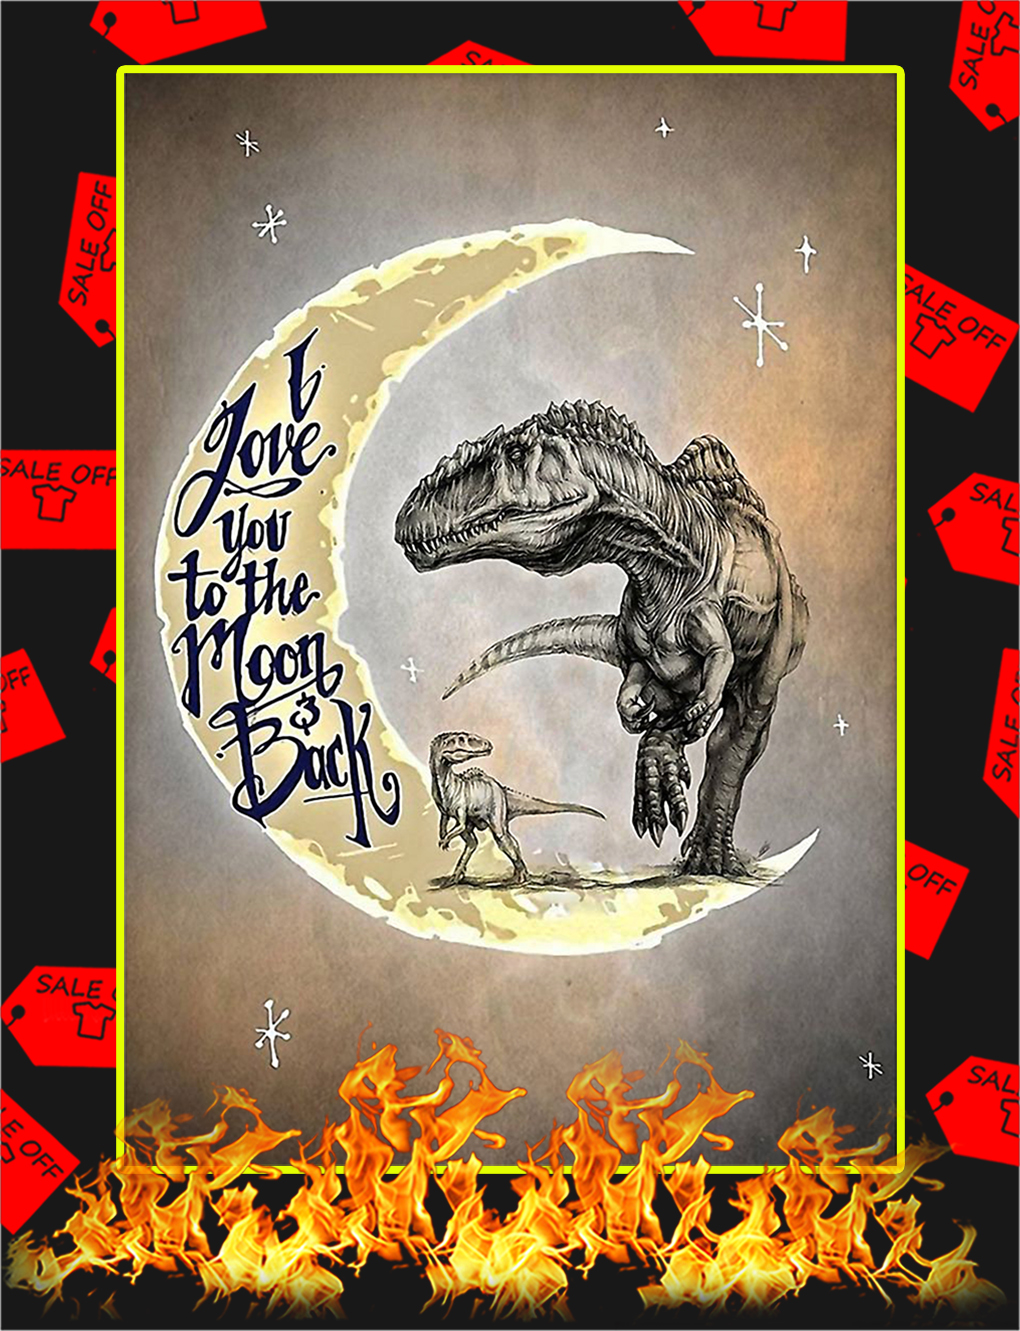 Dinosaurs I Love You To The Moon And Back Poster - A3Dinosaurs I Love You To The Moon And Back Poster - A3